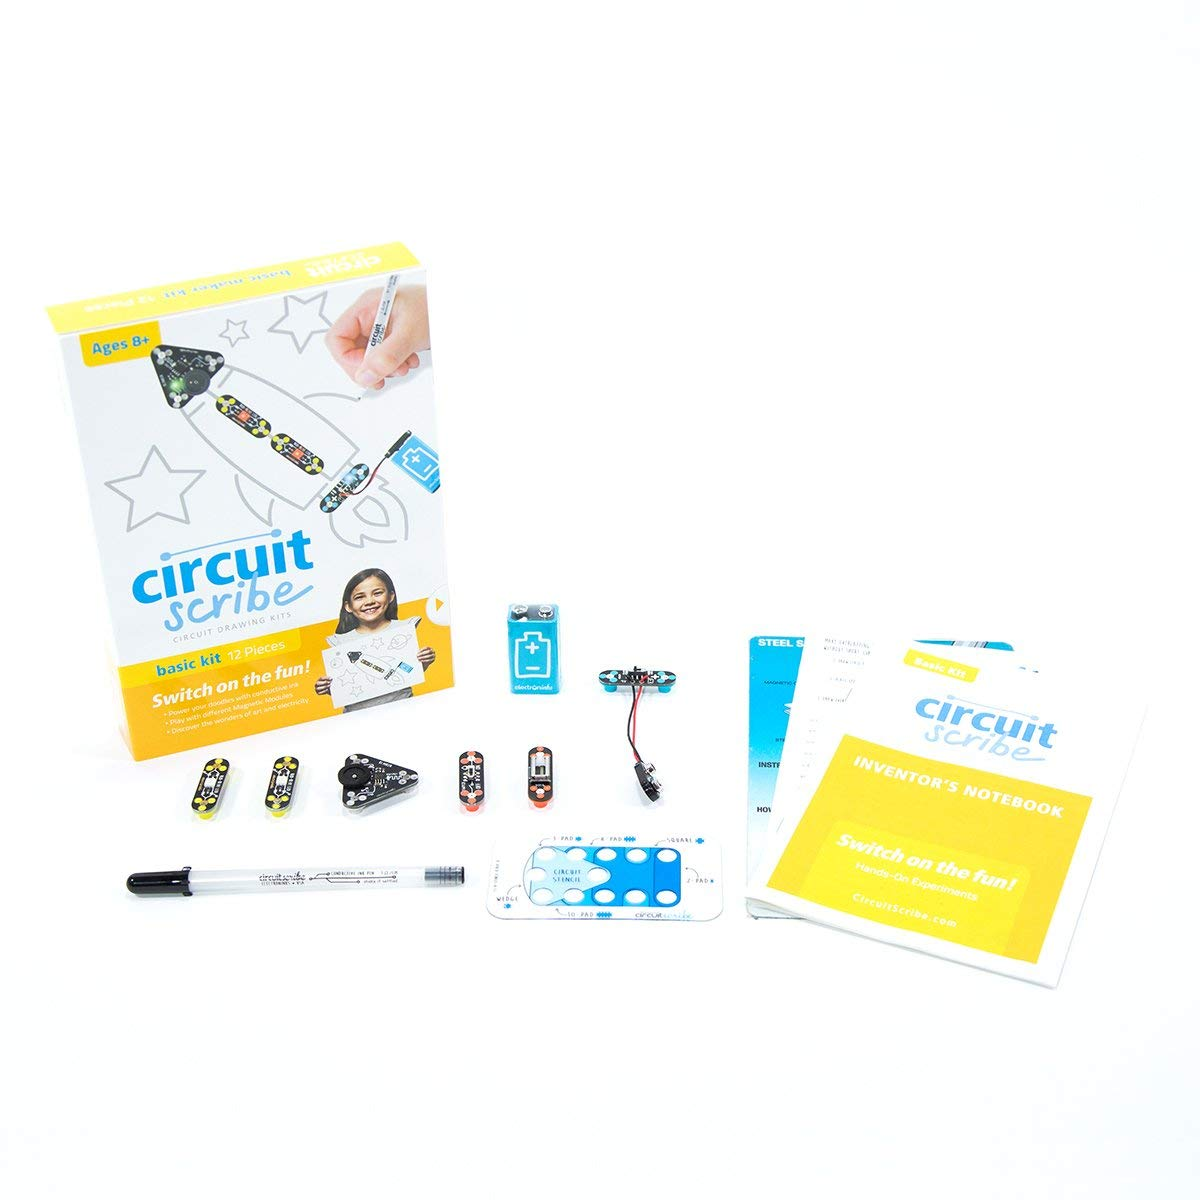 Circuit Scribe Basic Kit Includes Stem Workbook Pin By Electronic Products Magazine On Diagrams Pinterest Conductive Silver Ink Pen To Learn Explore And Create Your Own Circuits Switches